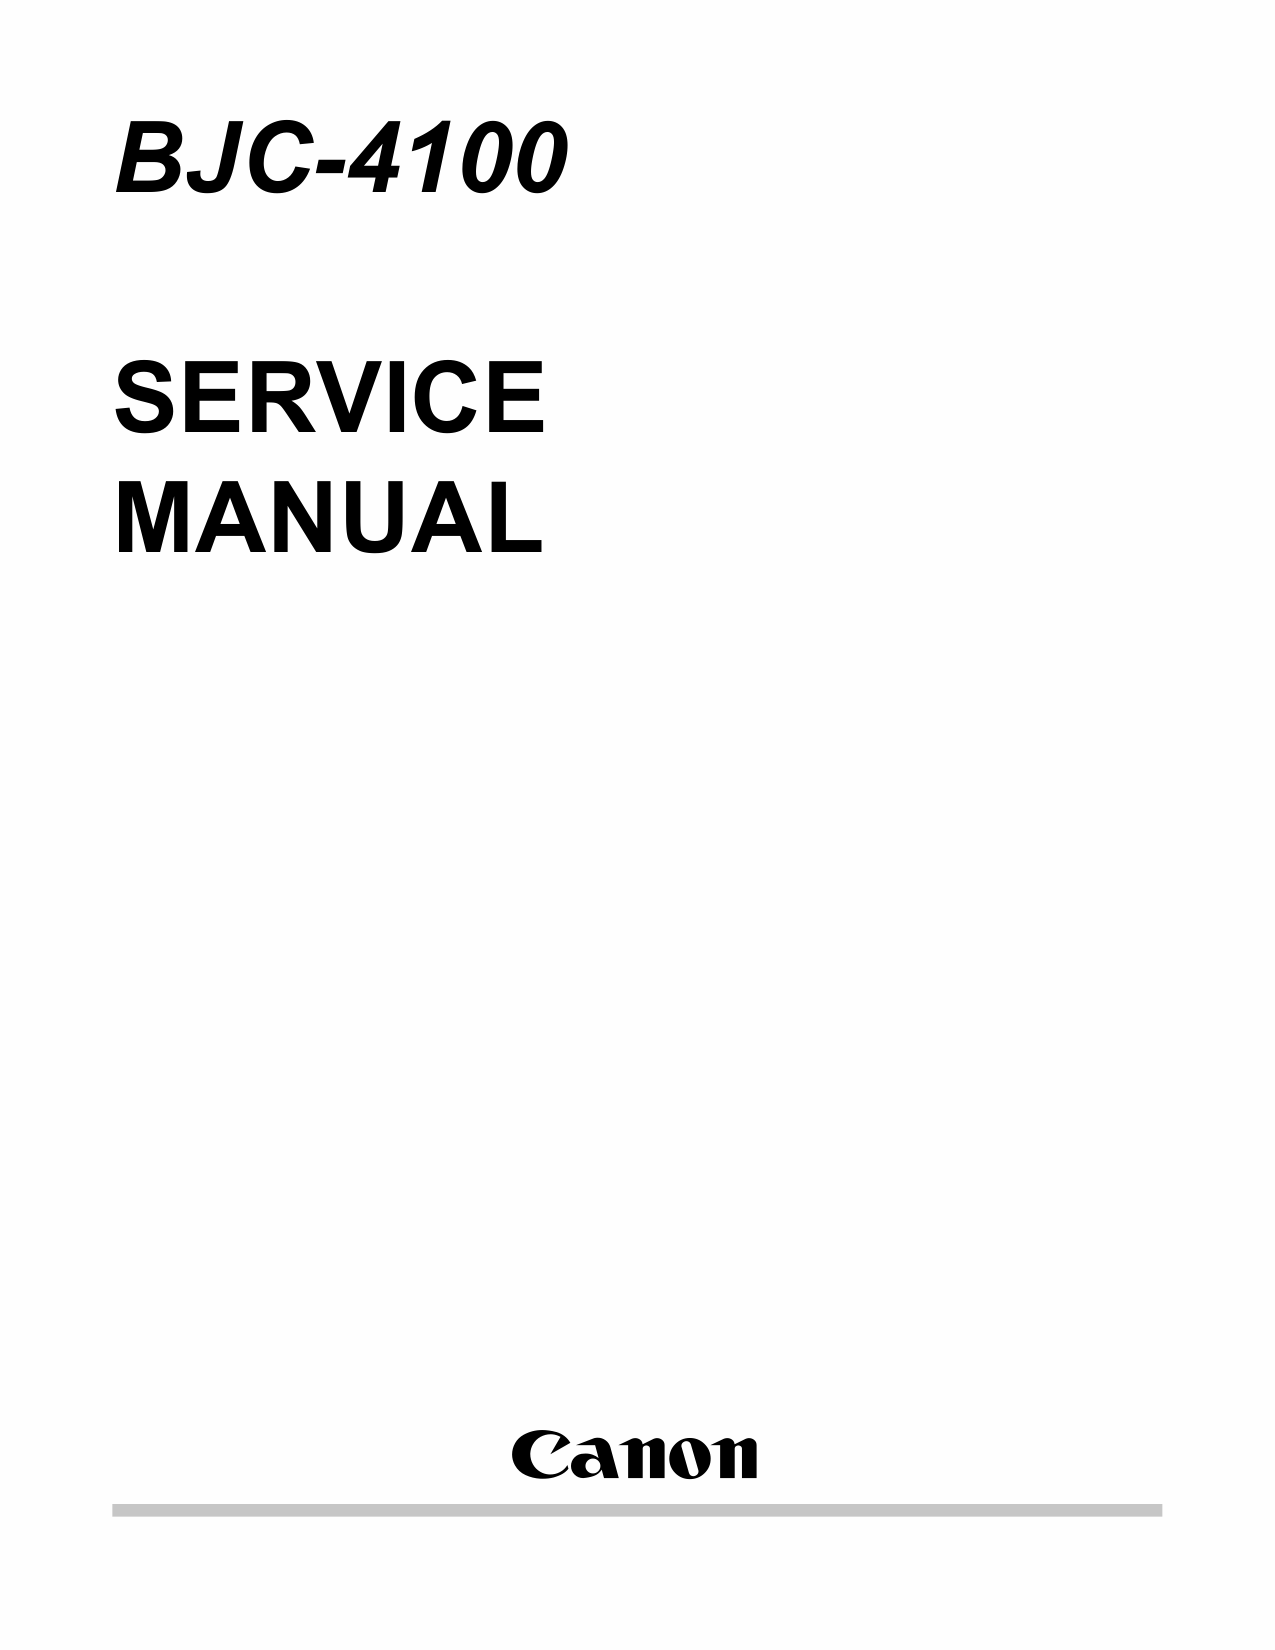 Canon BubbleJet BJC-4100 Service Manual-1